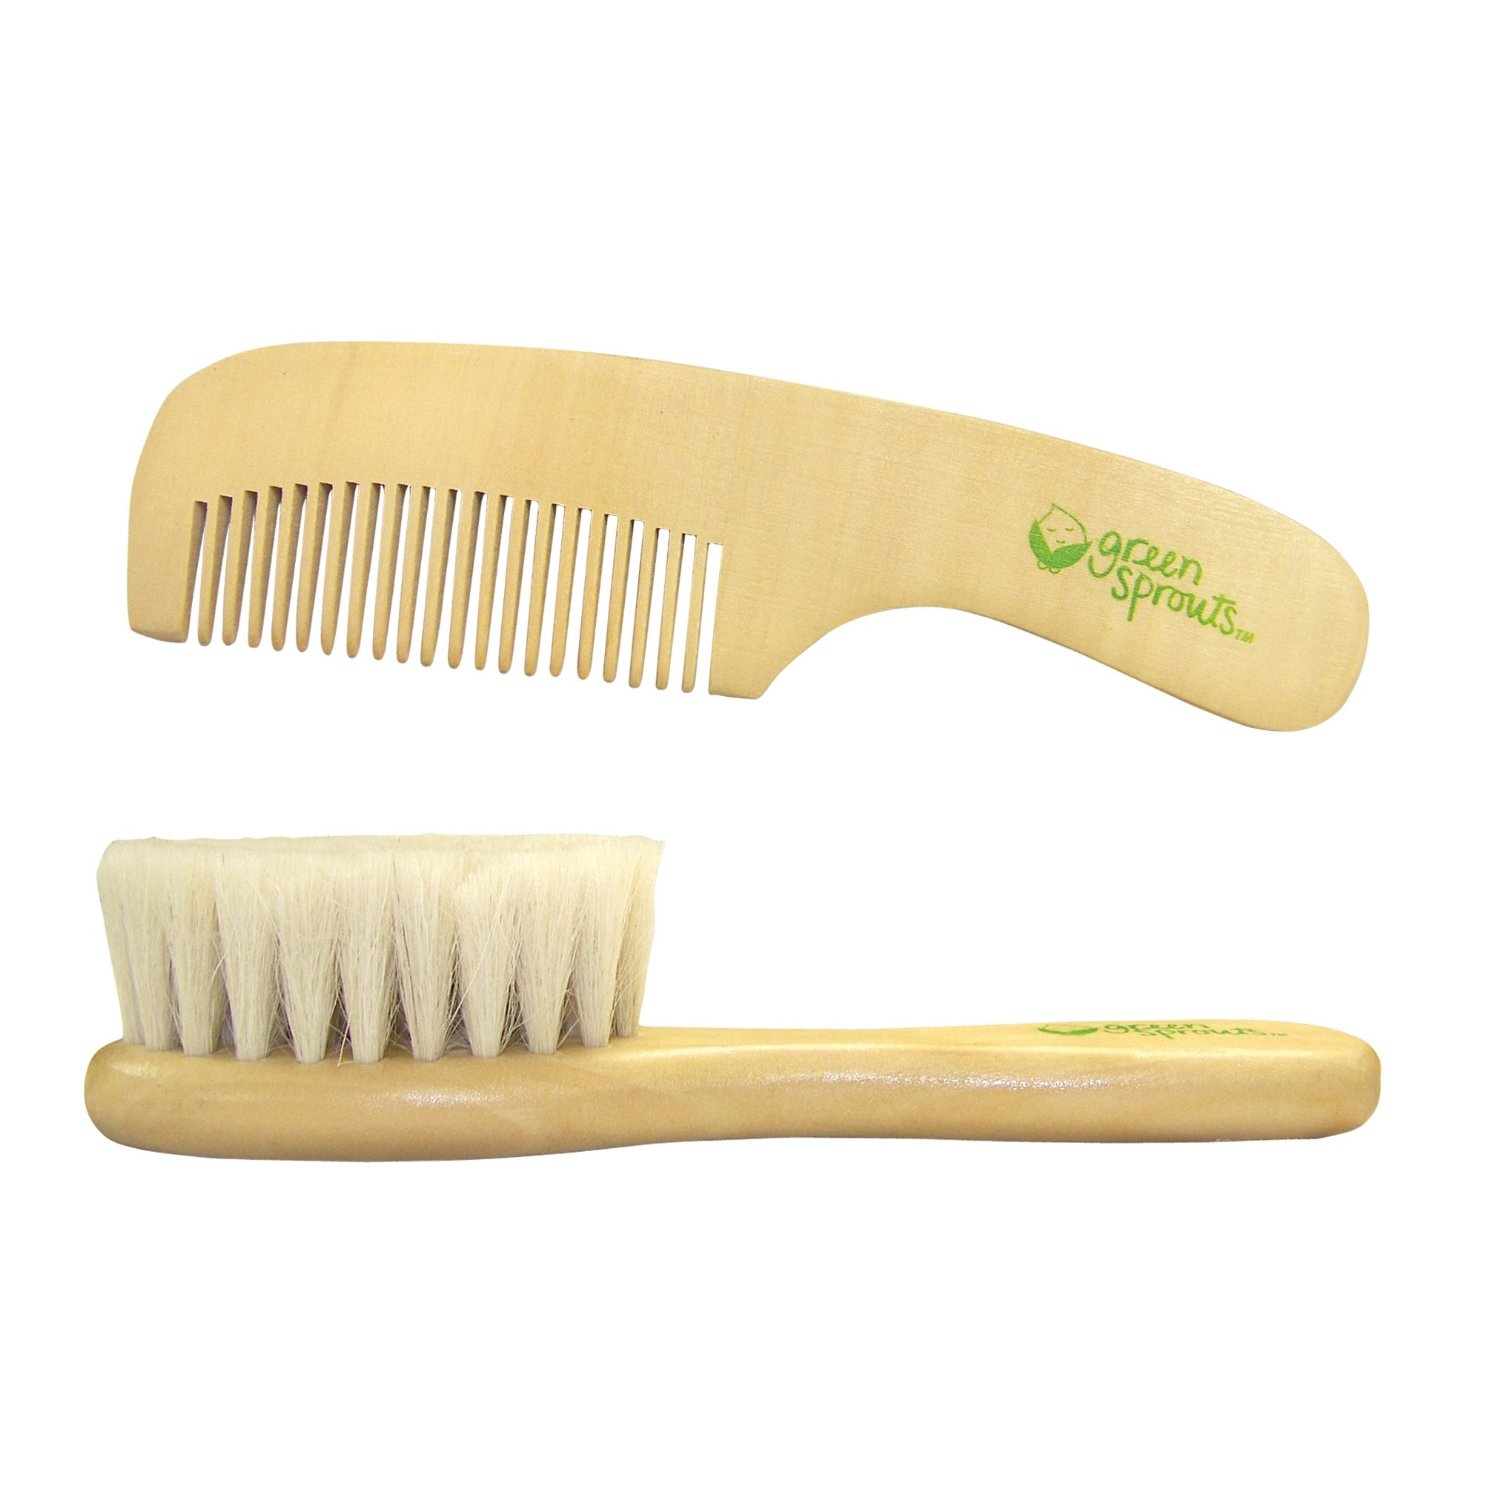 Green Sprouts Wooden Brush & Comb Set    $9.95    Wants 1  PURCHASED